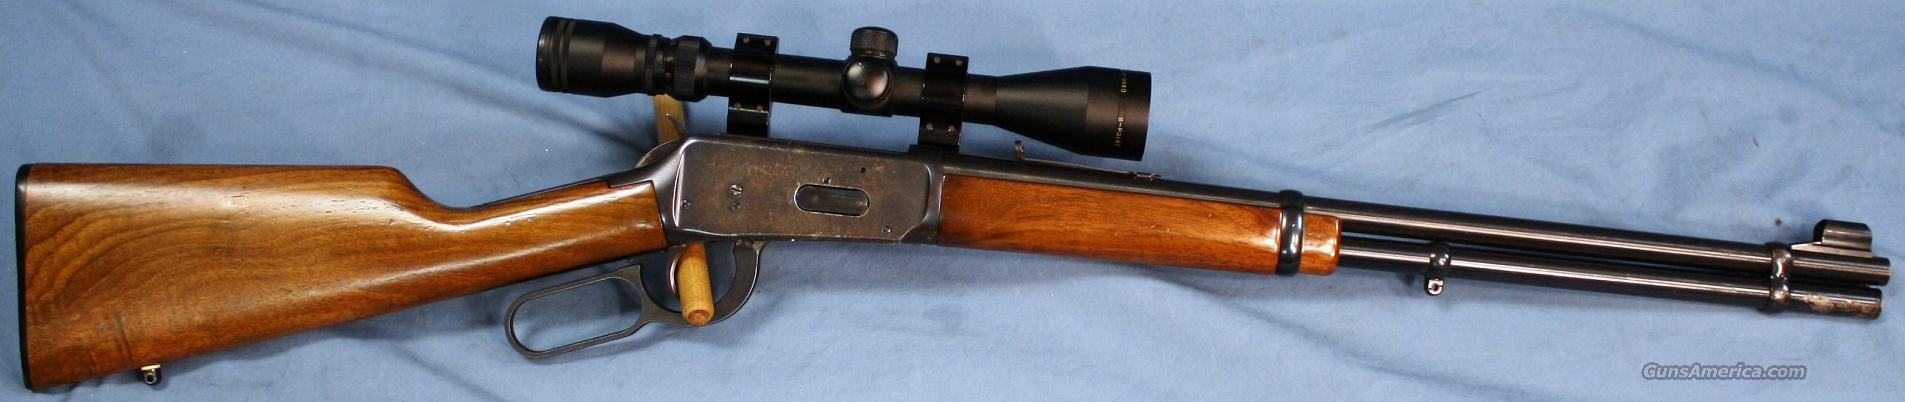 Winchester Model 94 Top Eject Lever Action Rifle .30-30 Win  Guns > Rifles > Winchester Rifles - Modern Lever > Model 94 > Post-64